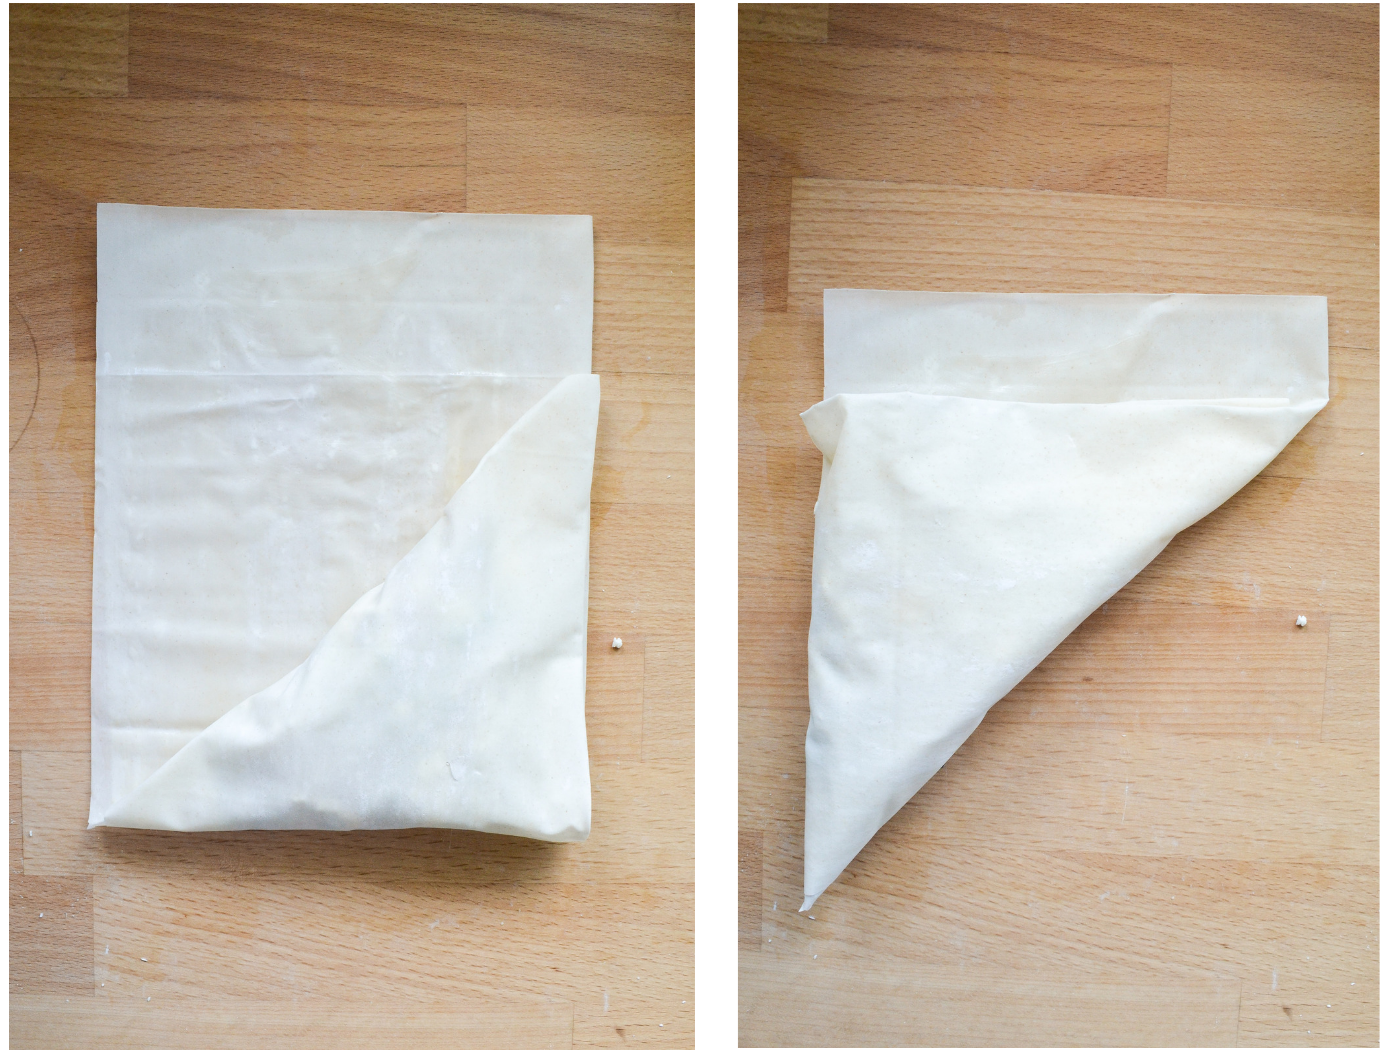 How to make filo pastry triangles